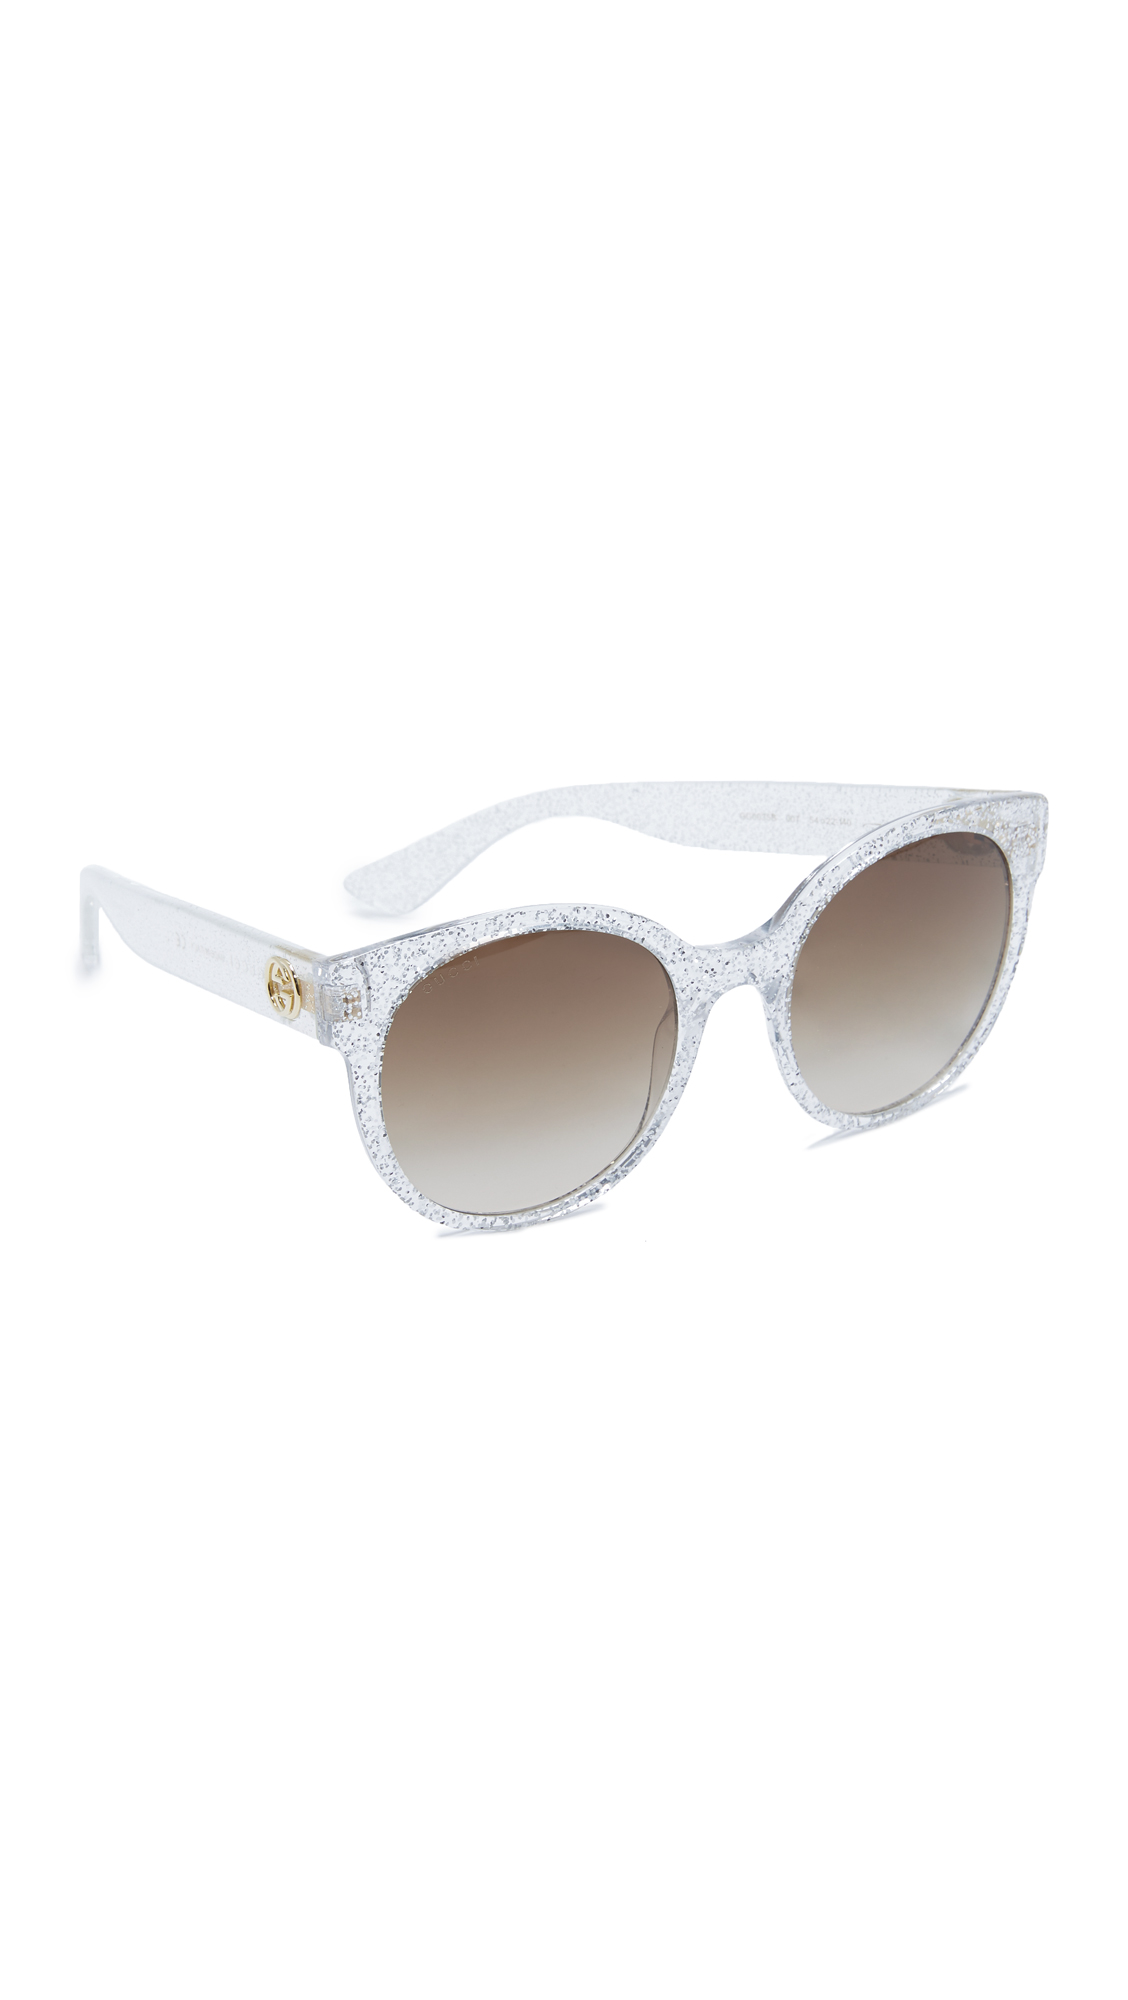 Gucci Urban Pop Round Sunglasses - Glitter Silver/Brown